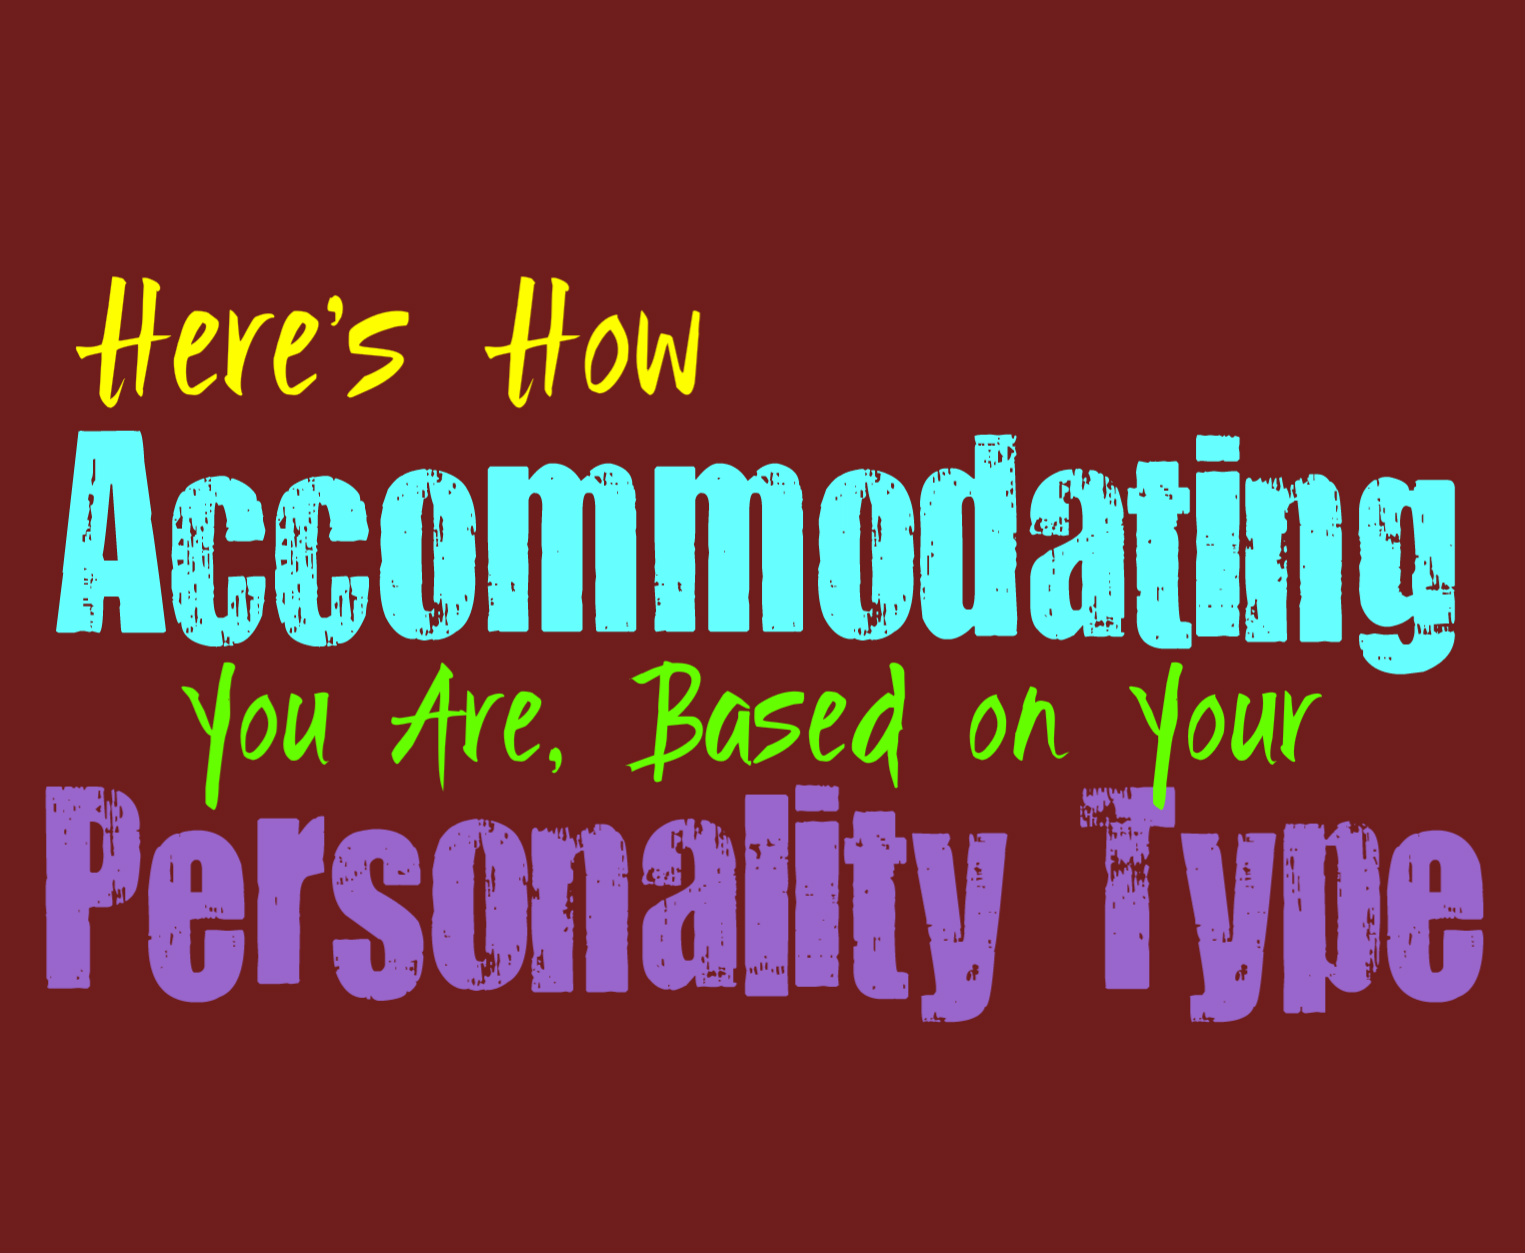 Accommodating personality type